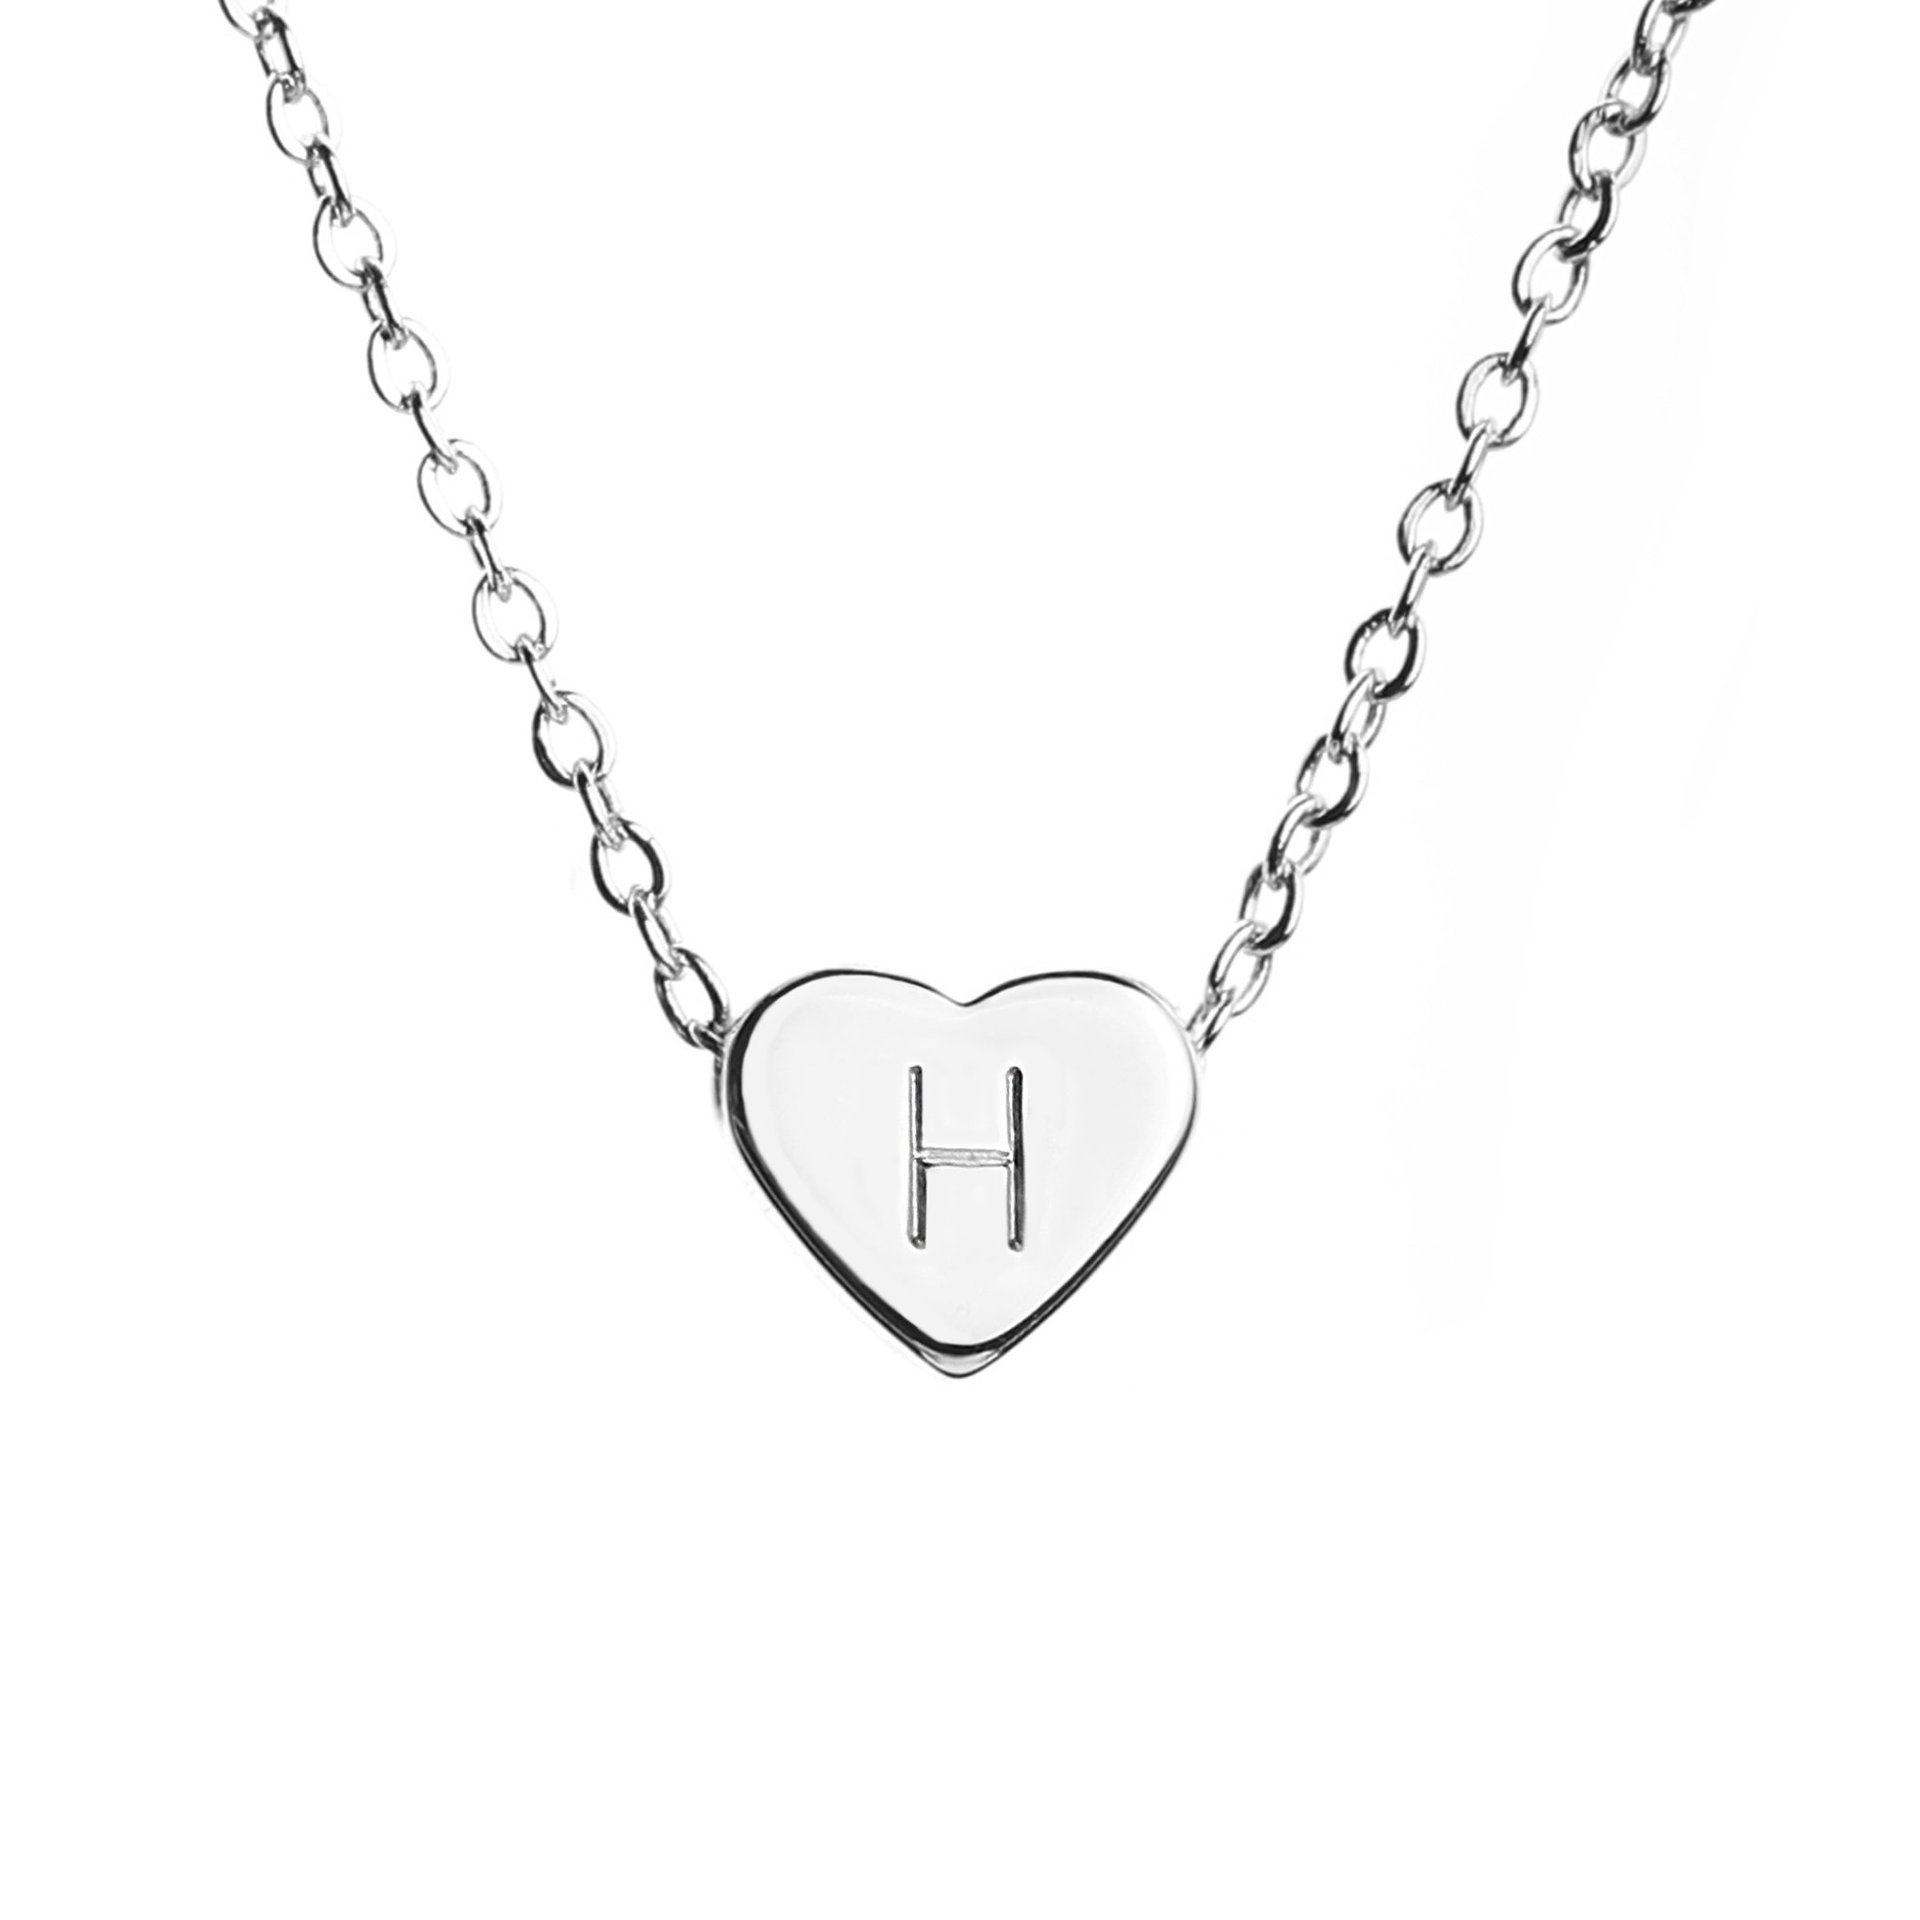 Lutio 925 Sterling Silver Heart Initial Necklace Mother/Father's Gift Birthday's Gift Wedding Gift for her Or him(H)